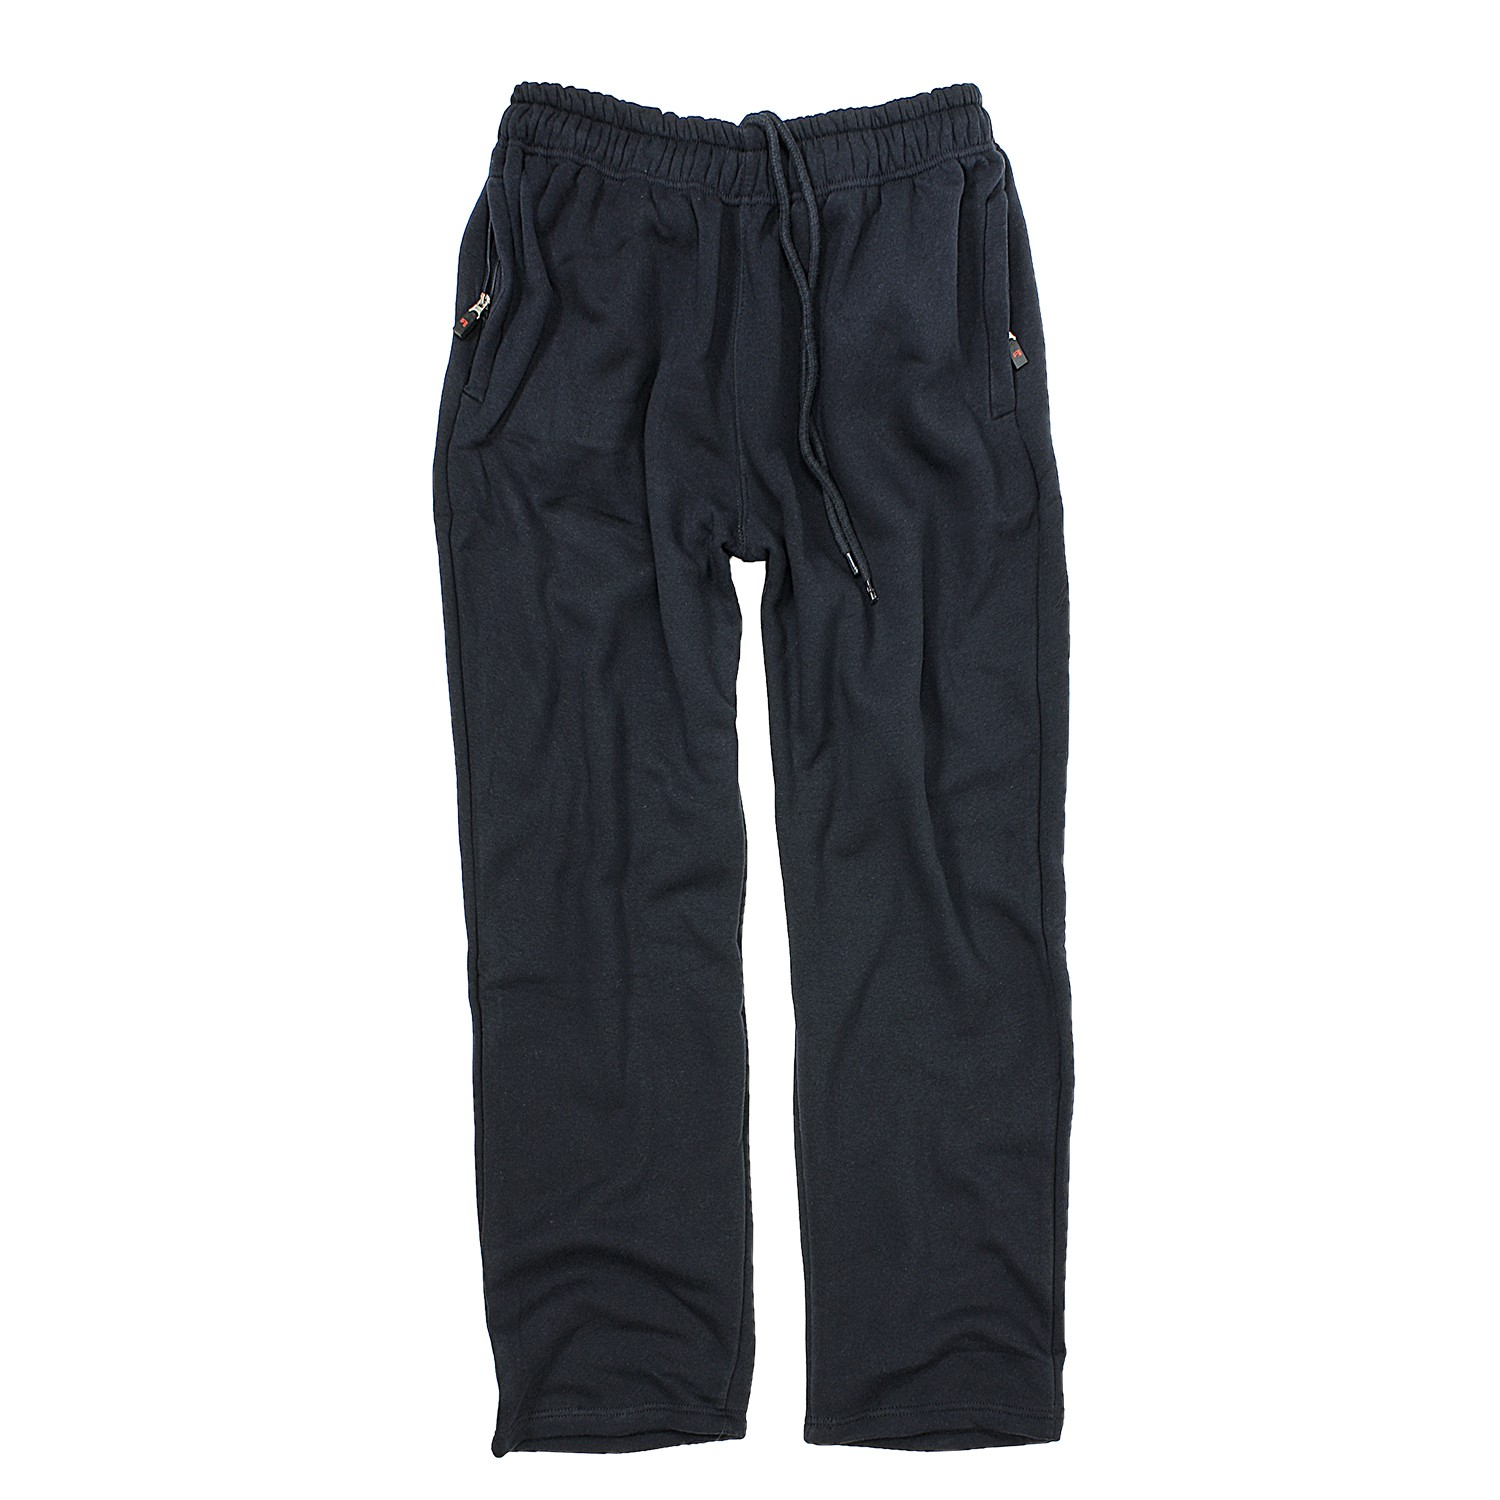 Detail Image to Jogging trousers model ALBERT in blue by Rockford in oversizes until 8XL